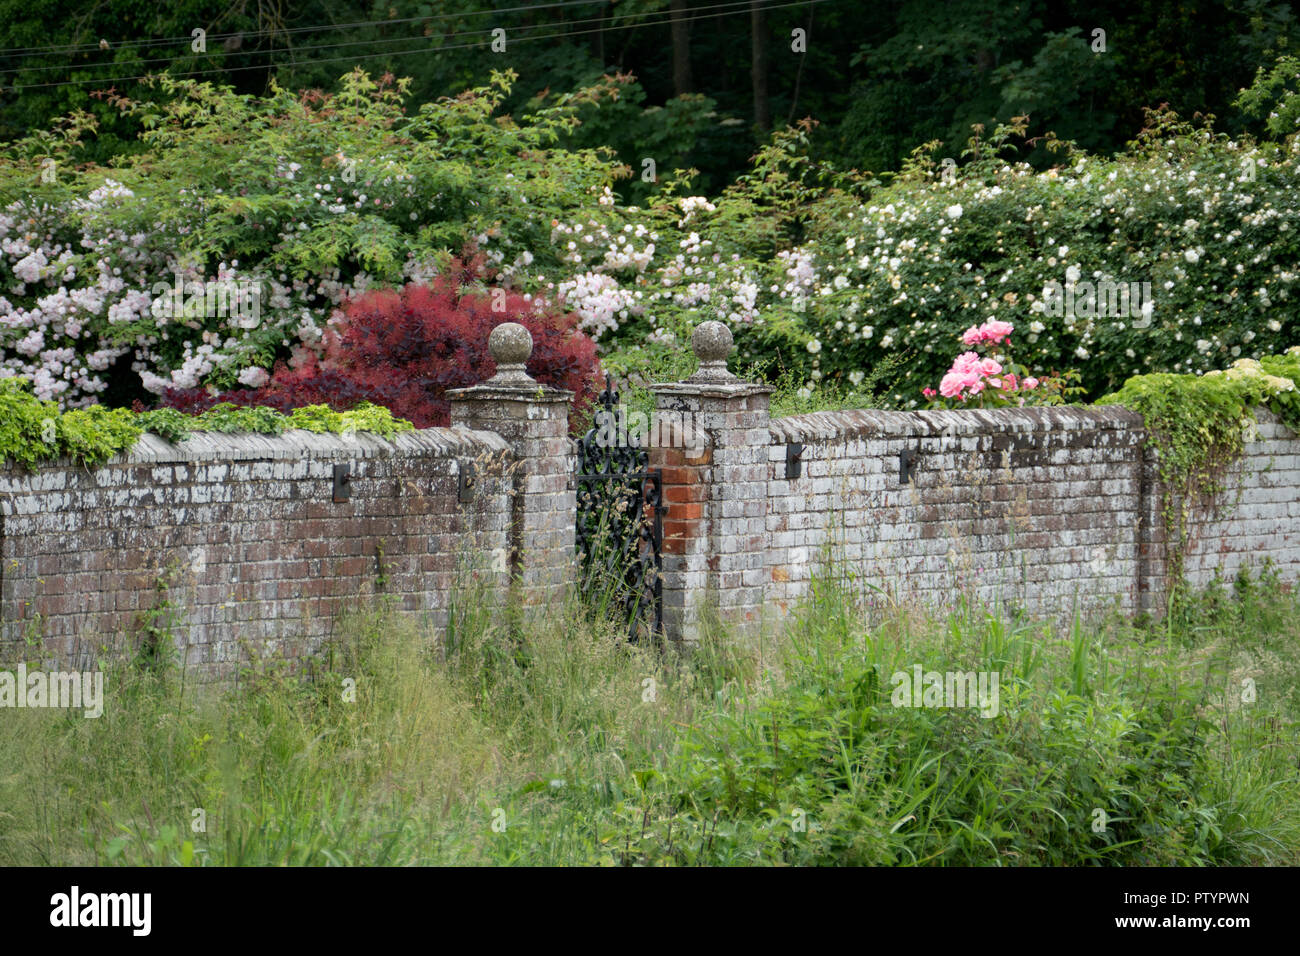 A picturesque garden wall with flowers on the River Way near Godalming in Surrey, England. - Stock Image